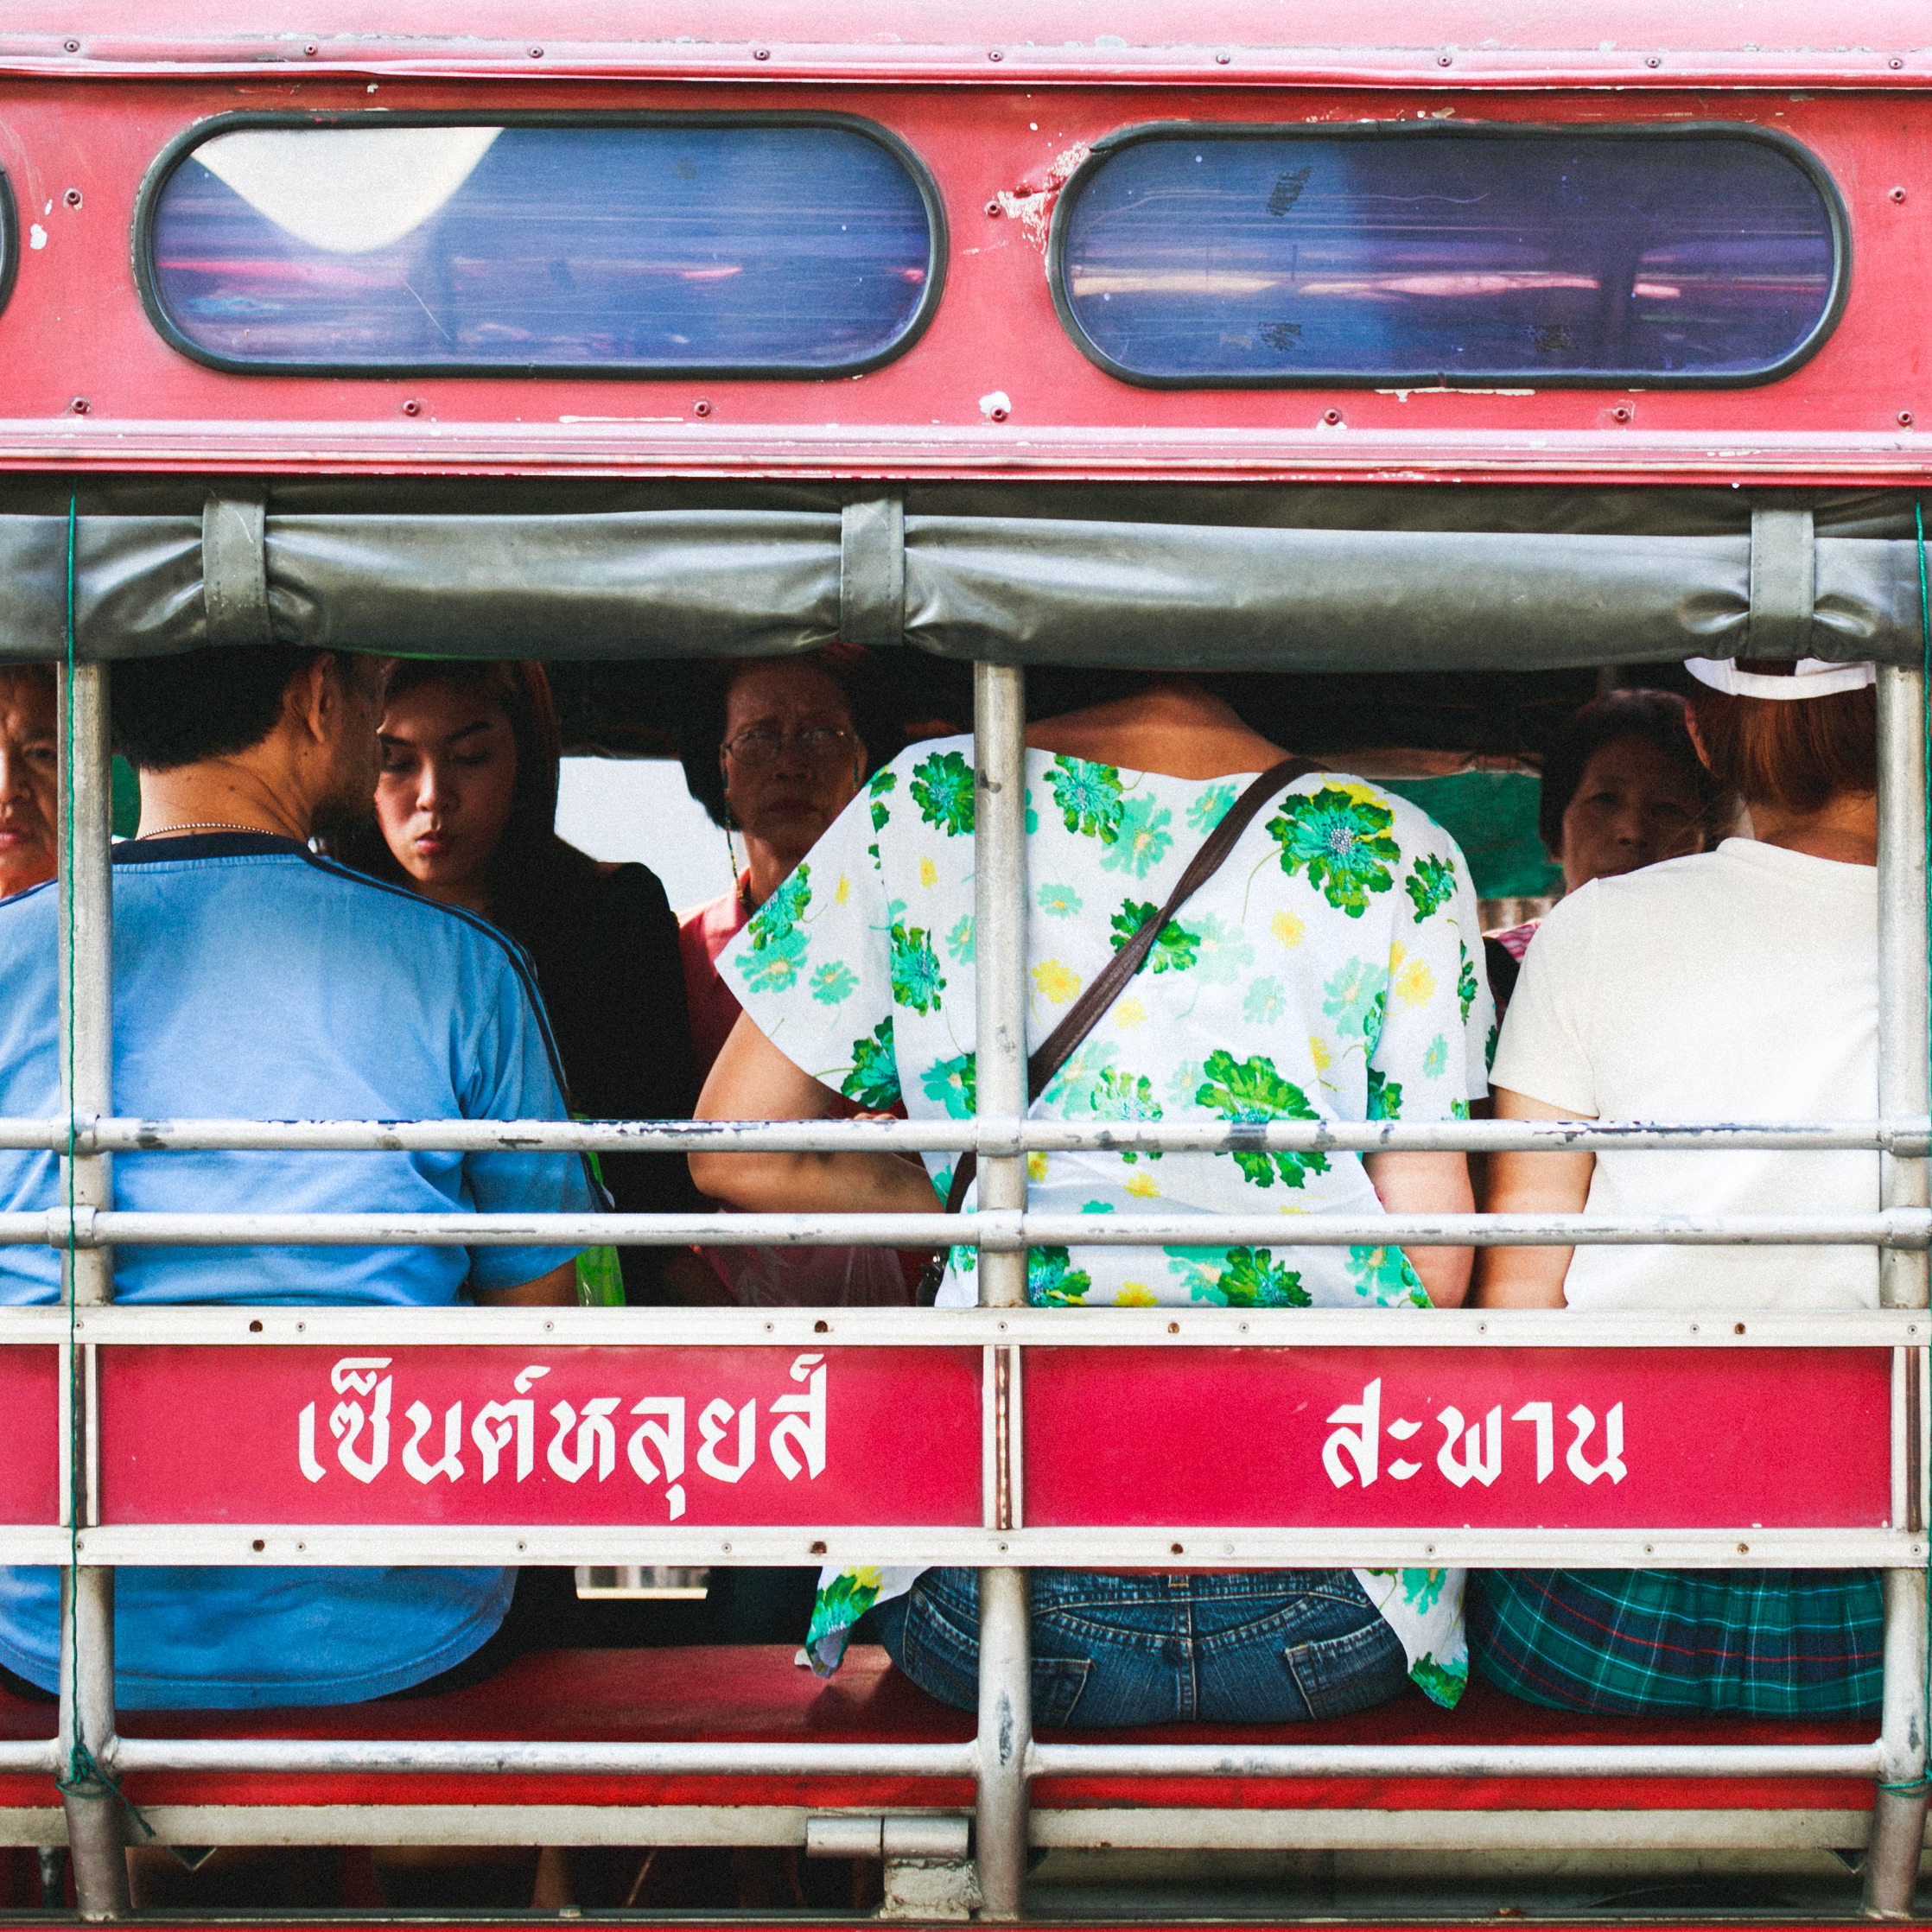 Song taew, traditional Thai style mini bus